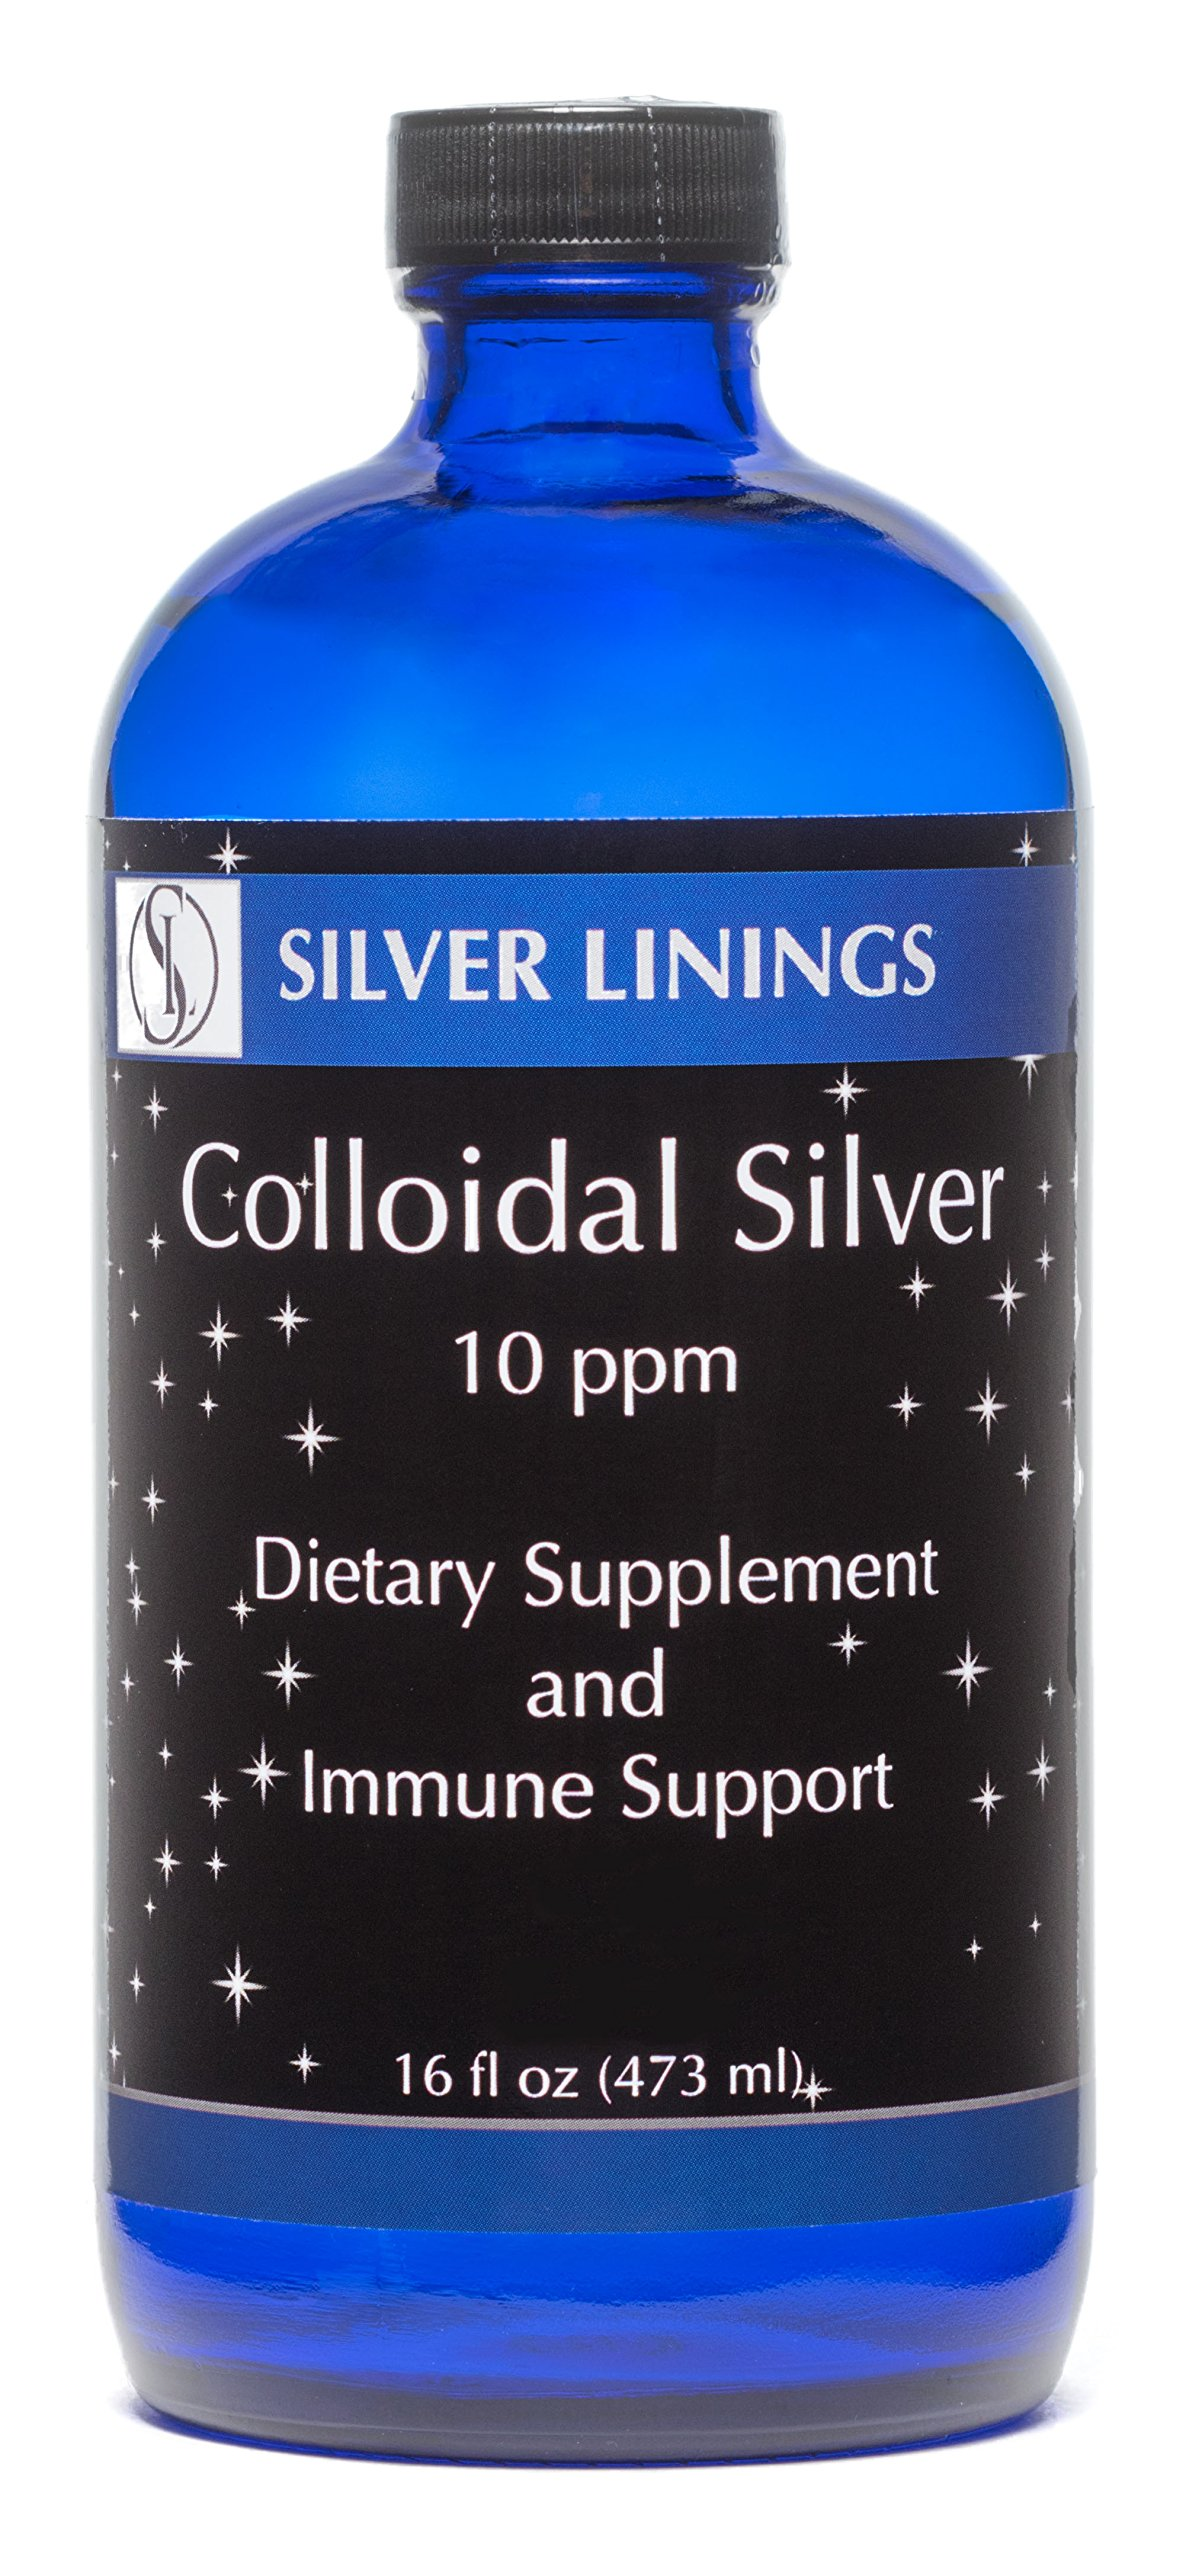 Get Quotations · Silver Linings Colloidal Silver Hydrosol, 10 PPM, A  Powerful Natural Antibiotic, and Preventative